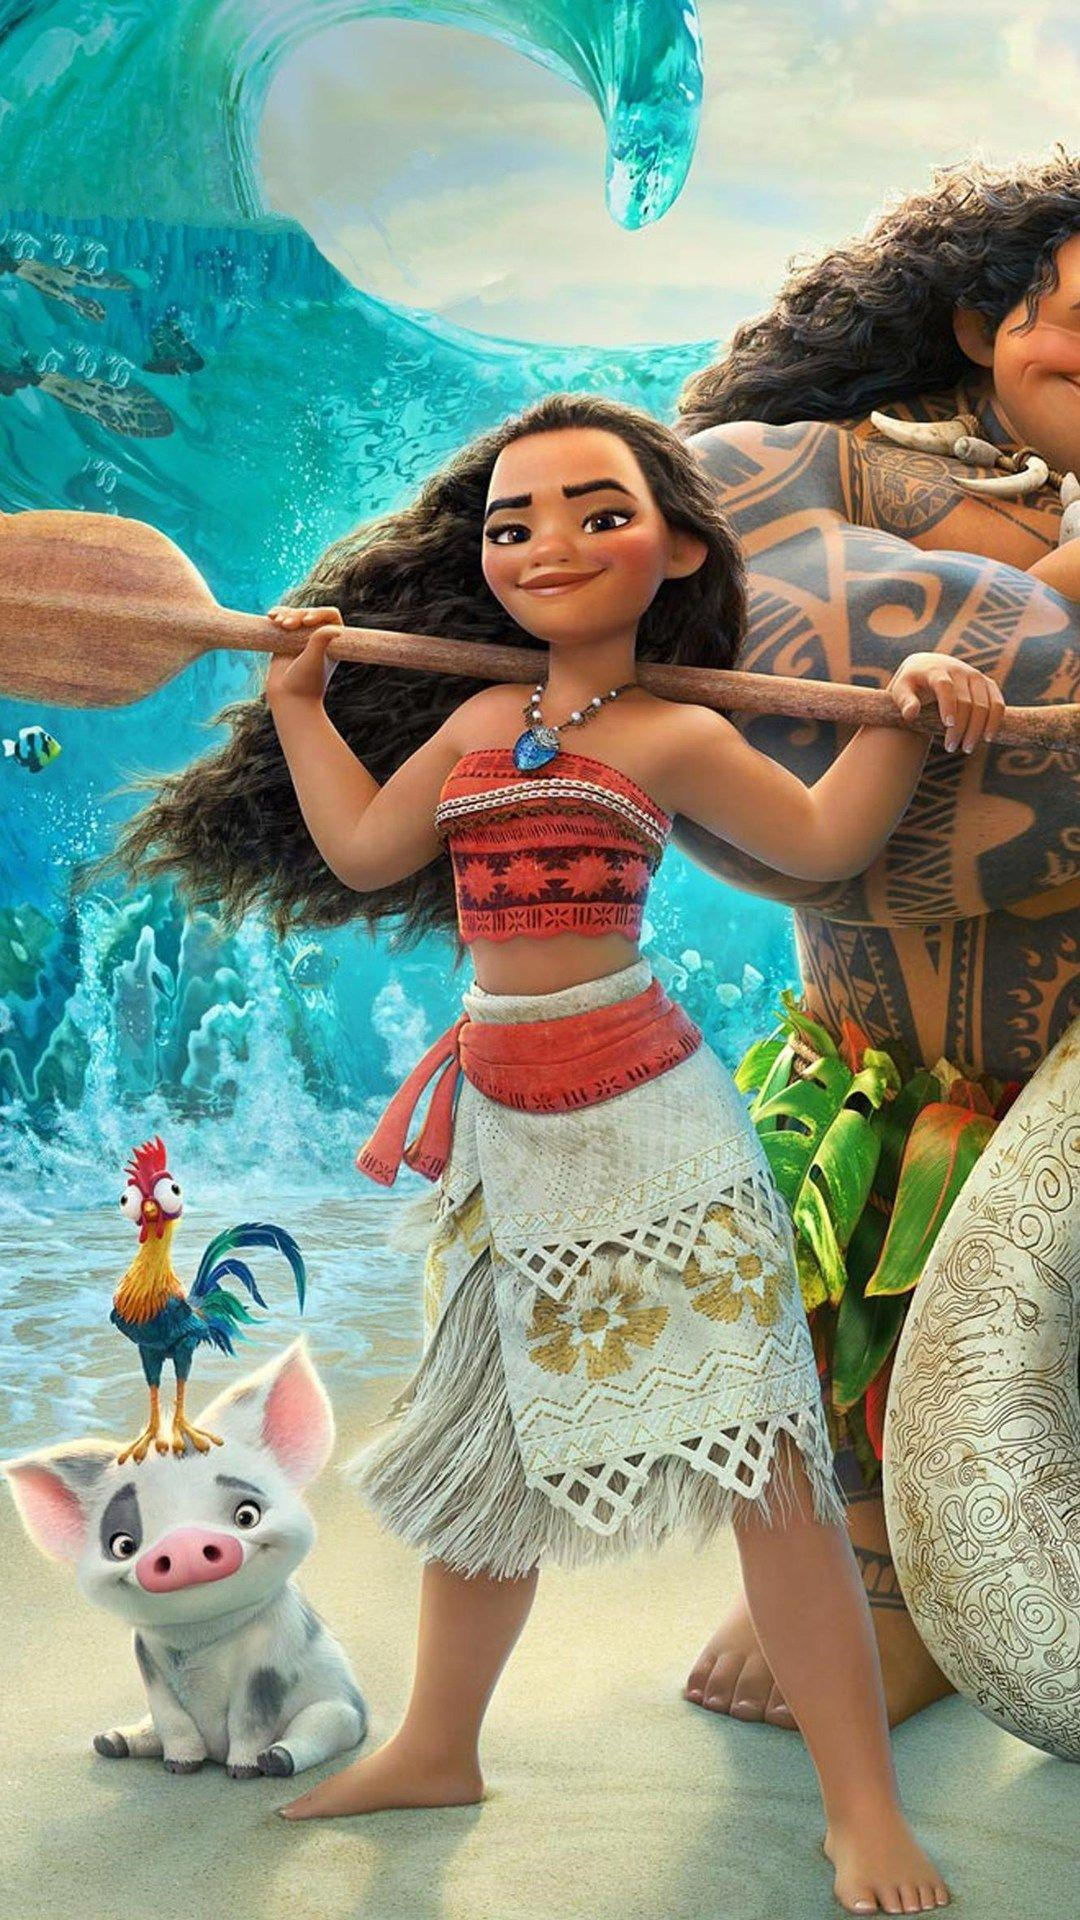 It's just a picture of Soft Images of Moana